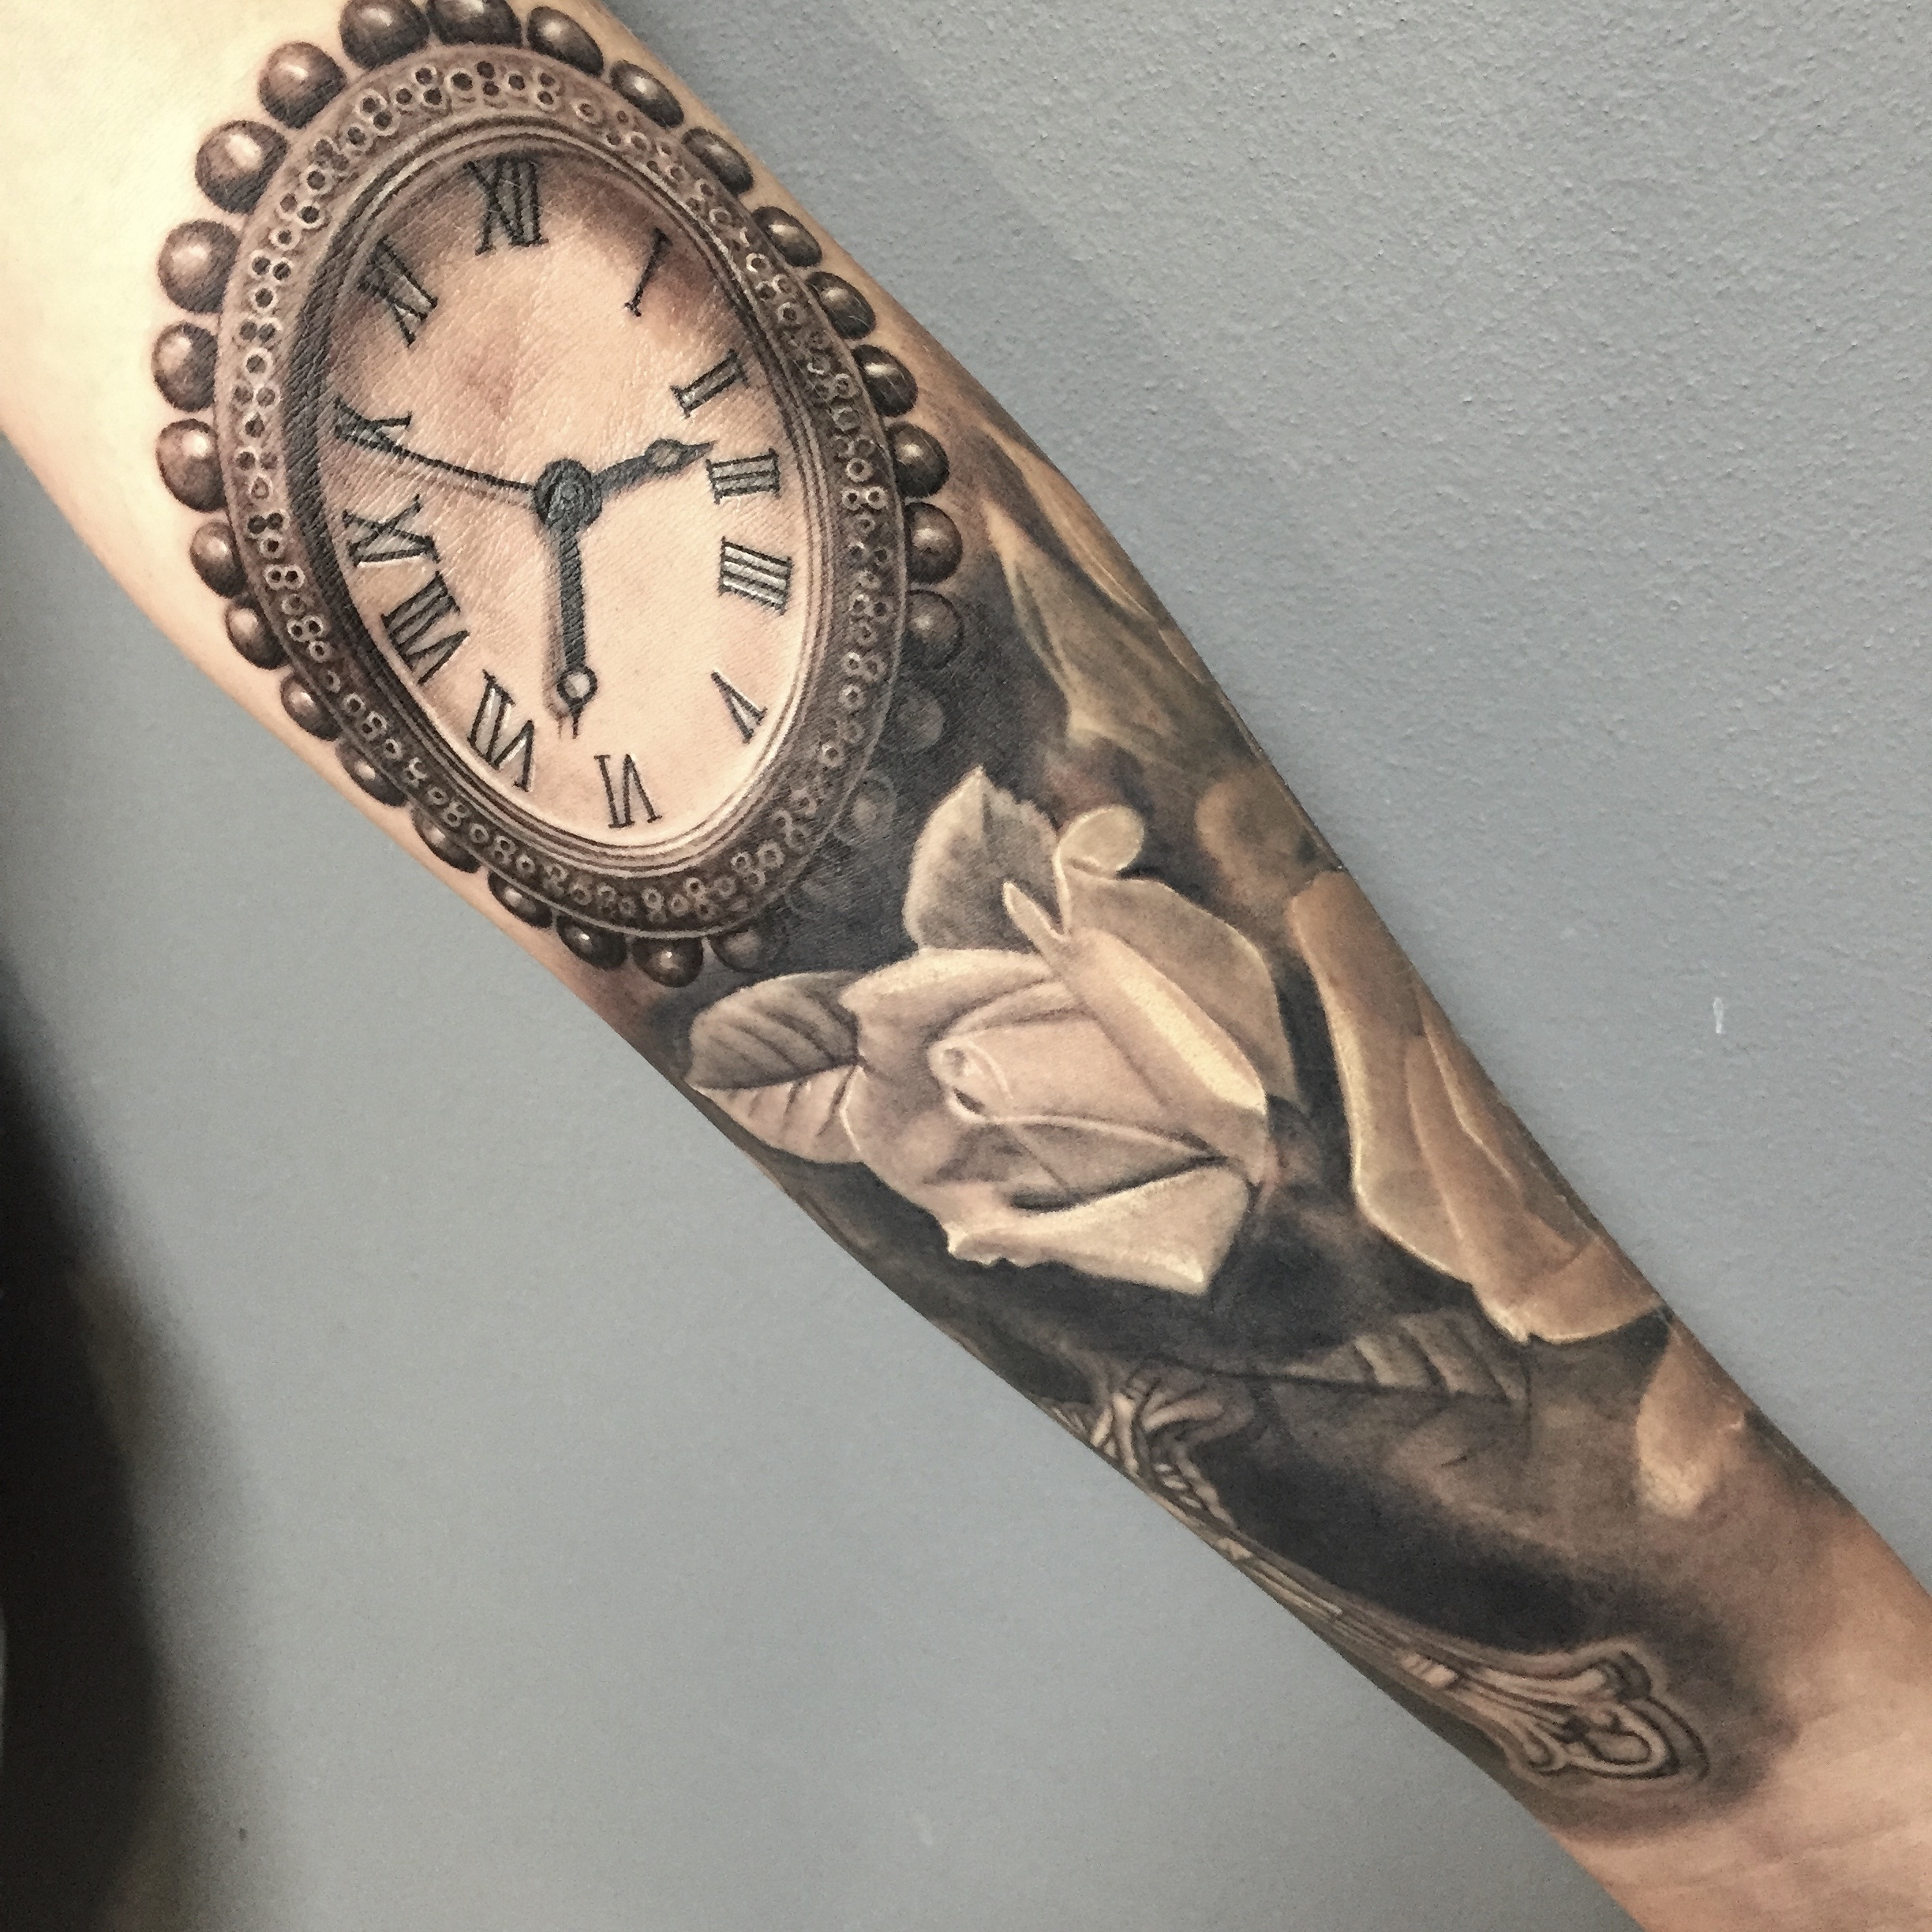 clock, oval, realistic, style, electrographic tattoo,germany, bayern, rosenheim, münchen , salzburg , innsbruck, vogel, rose, tattoo, tattoo art, color, realistic